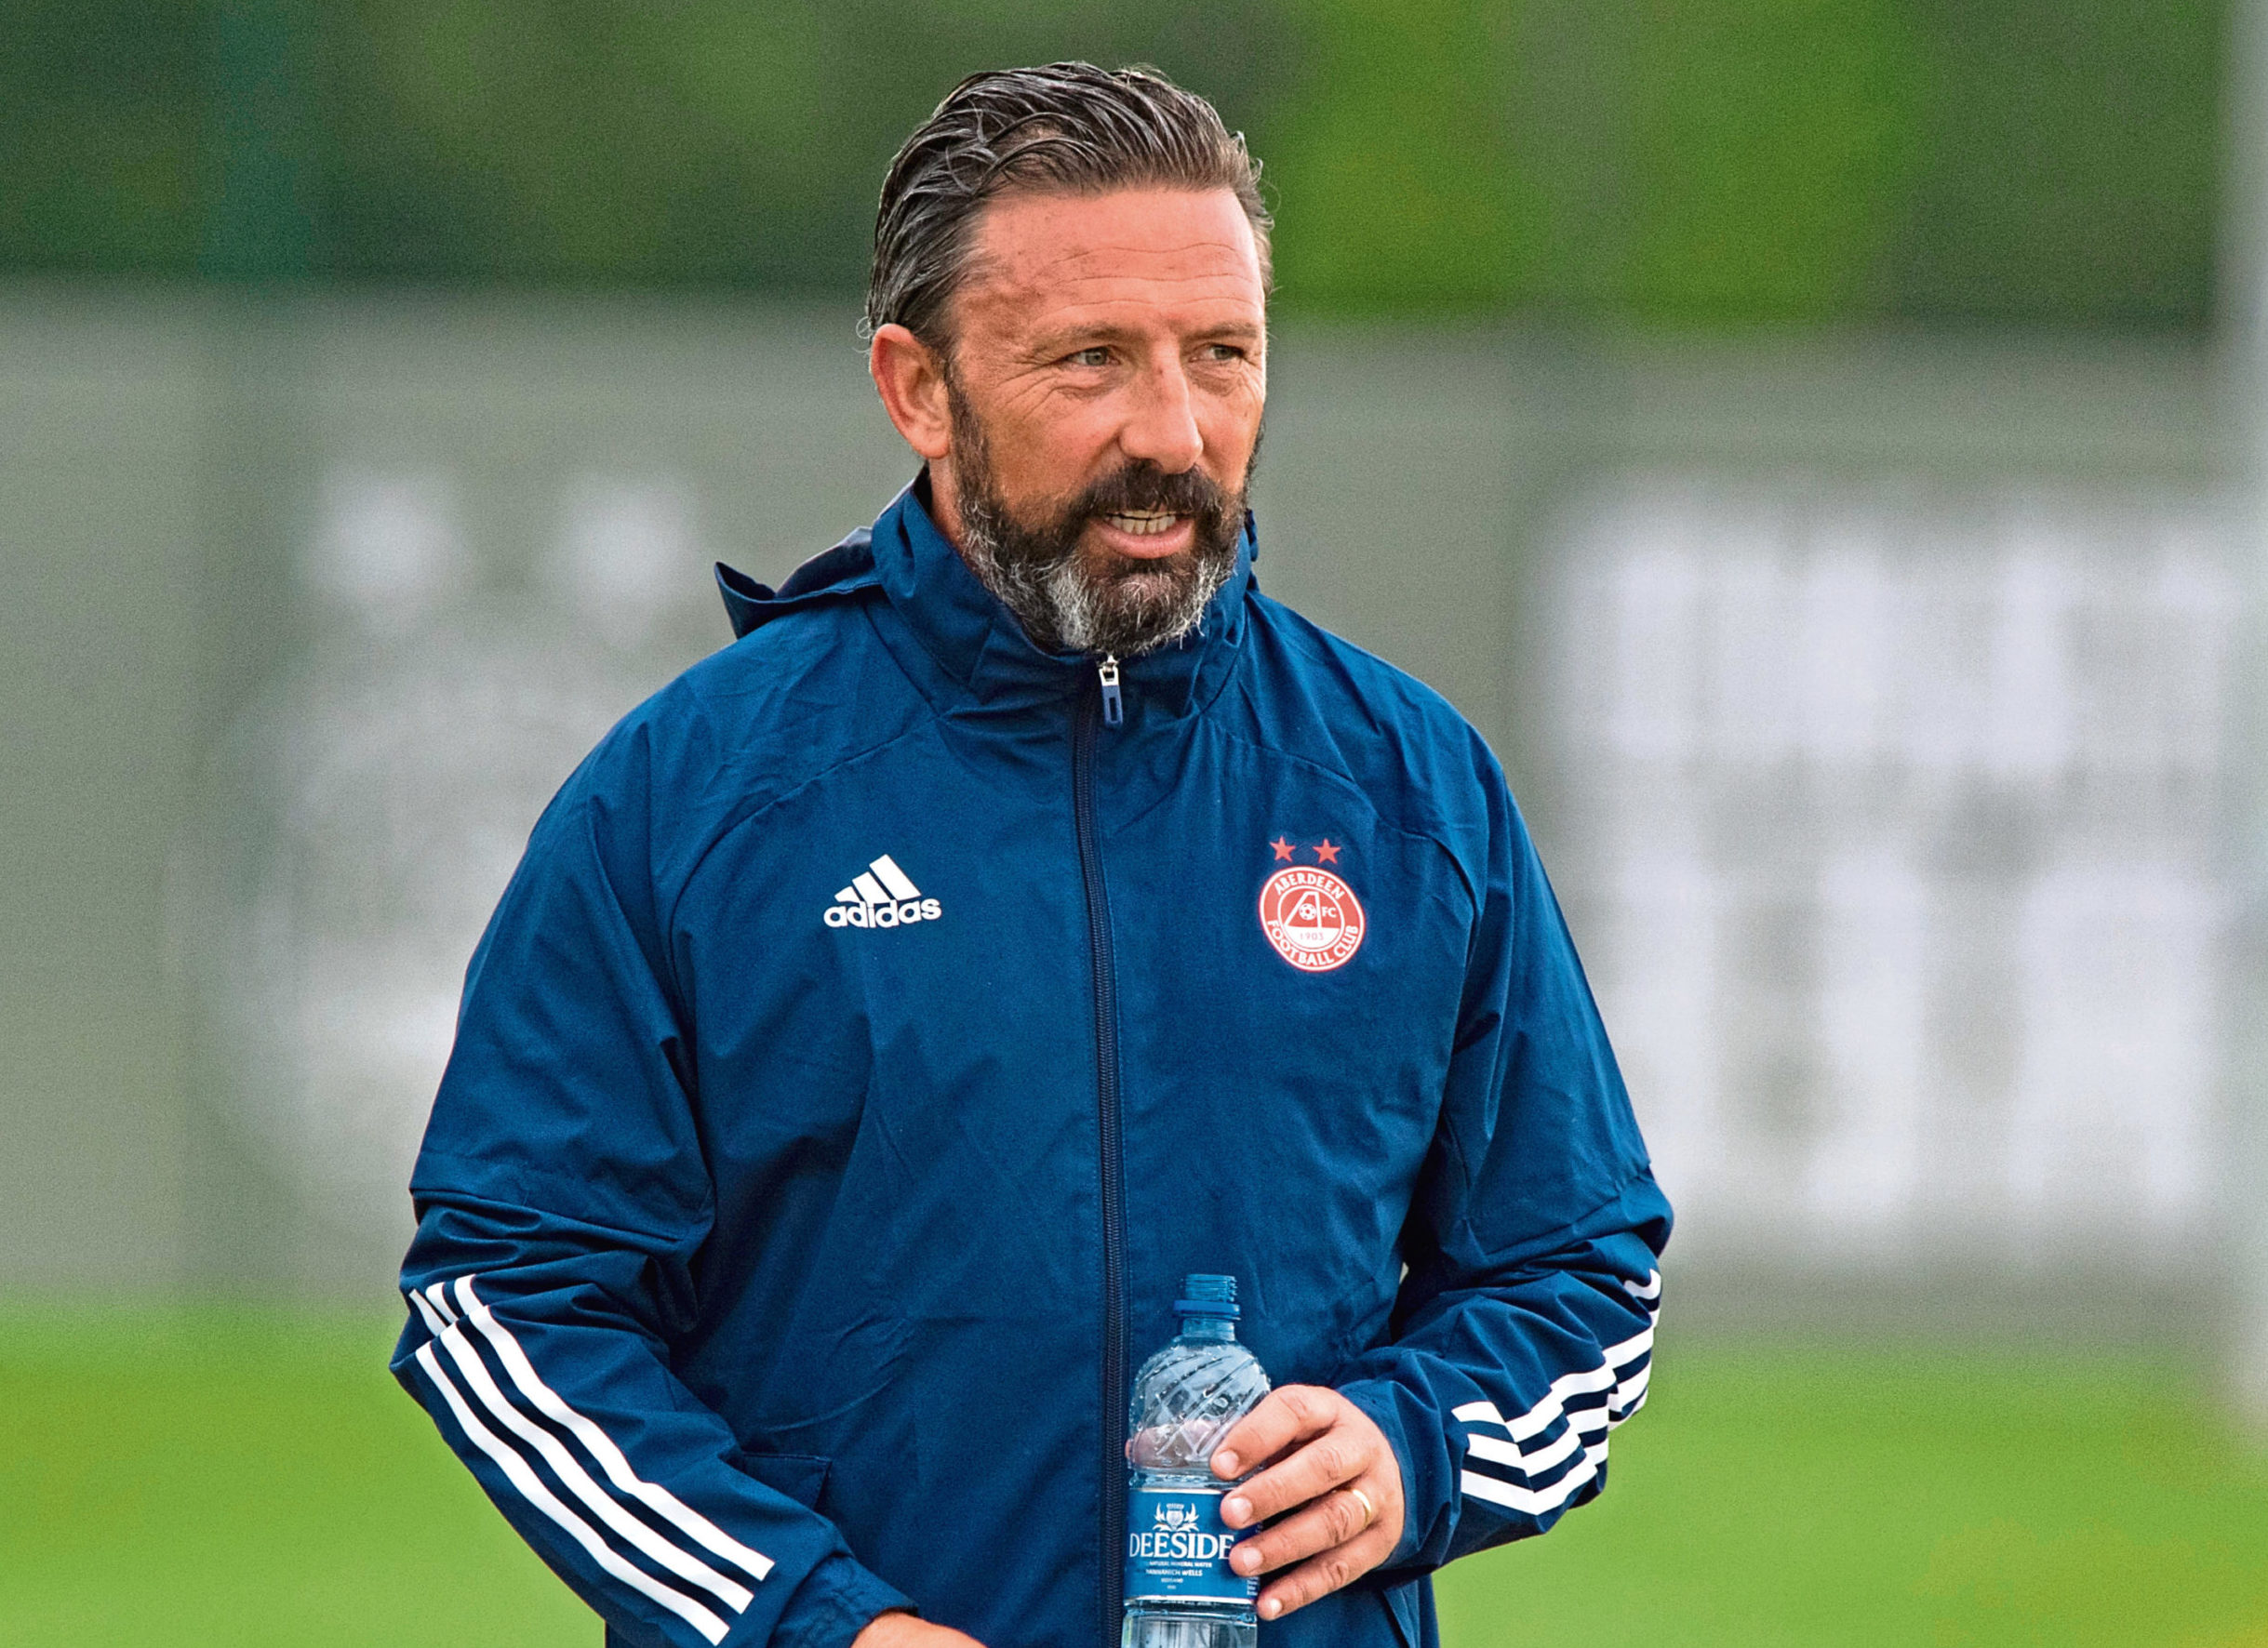 Who will Dons boss Derek McInnes give the nod to?